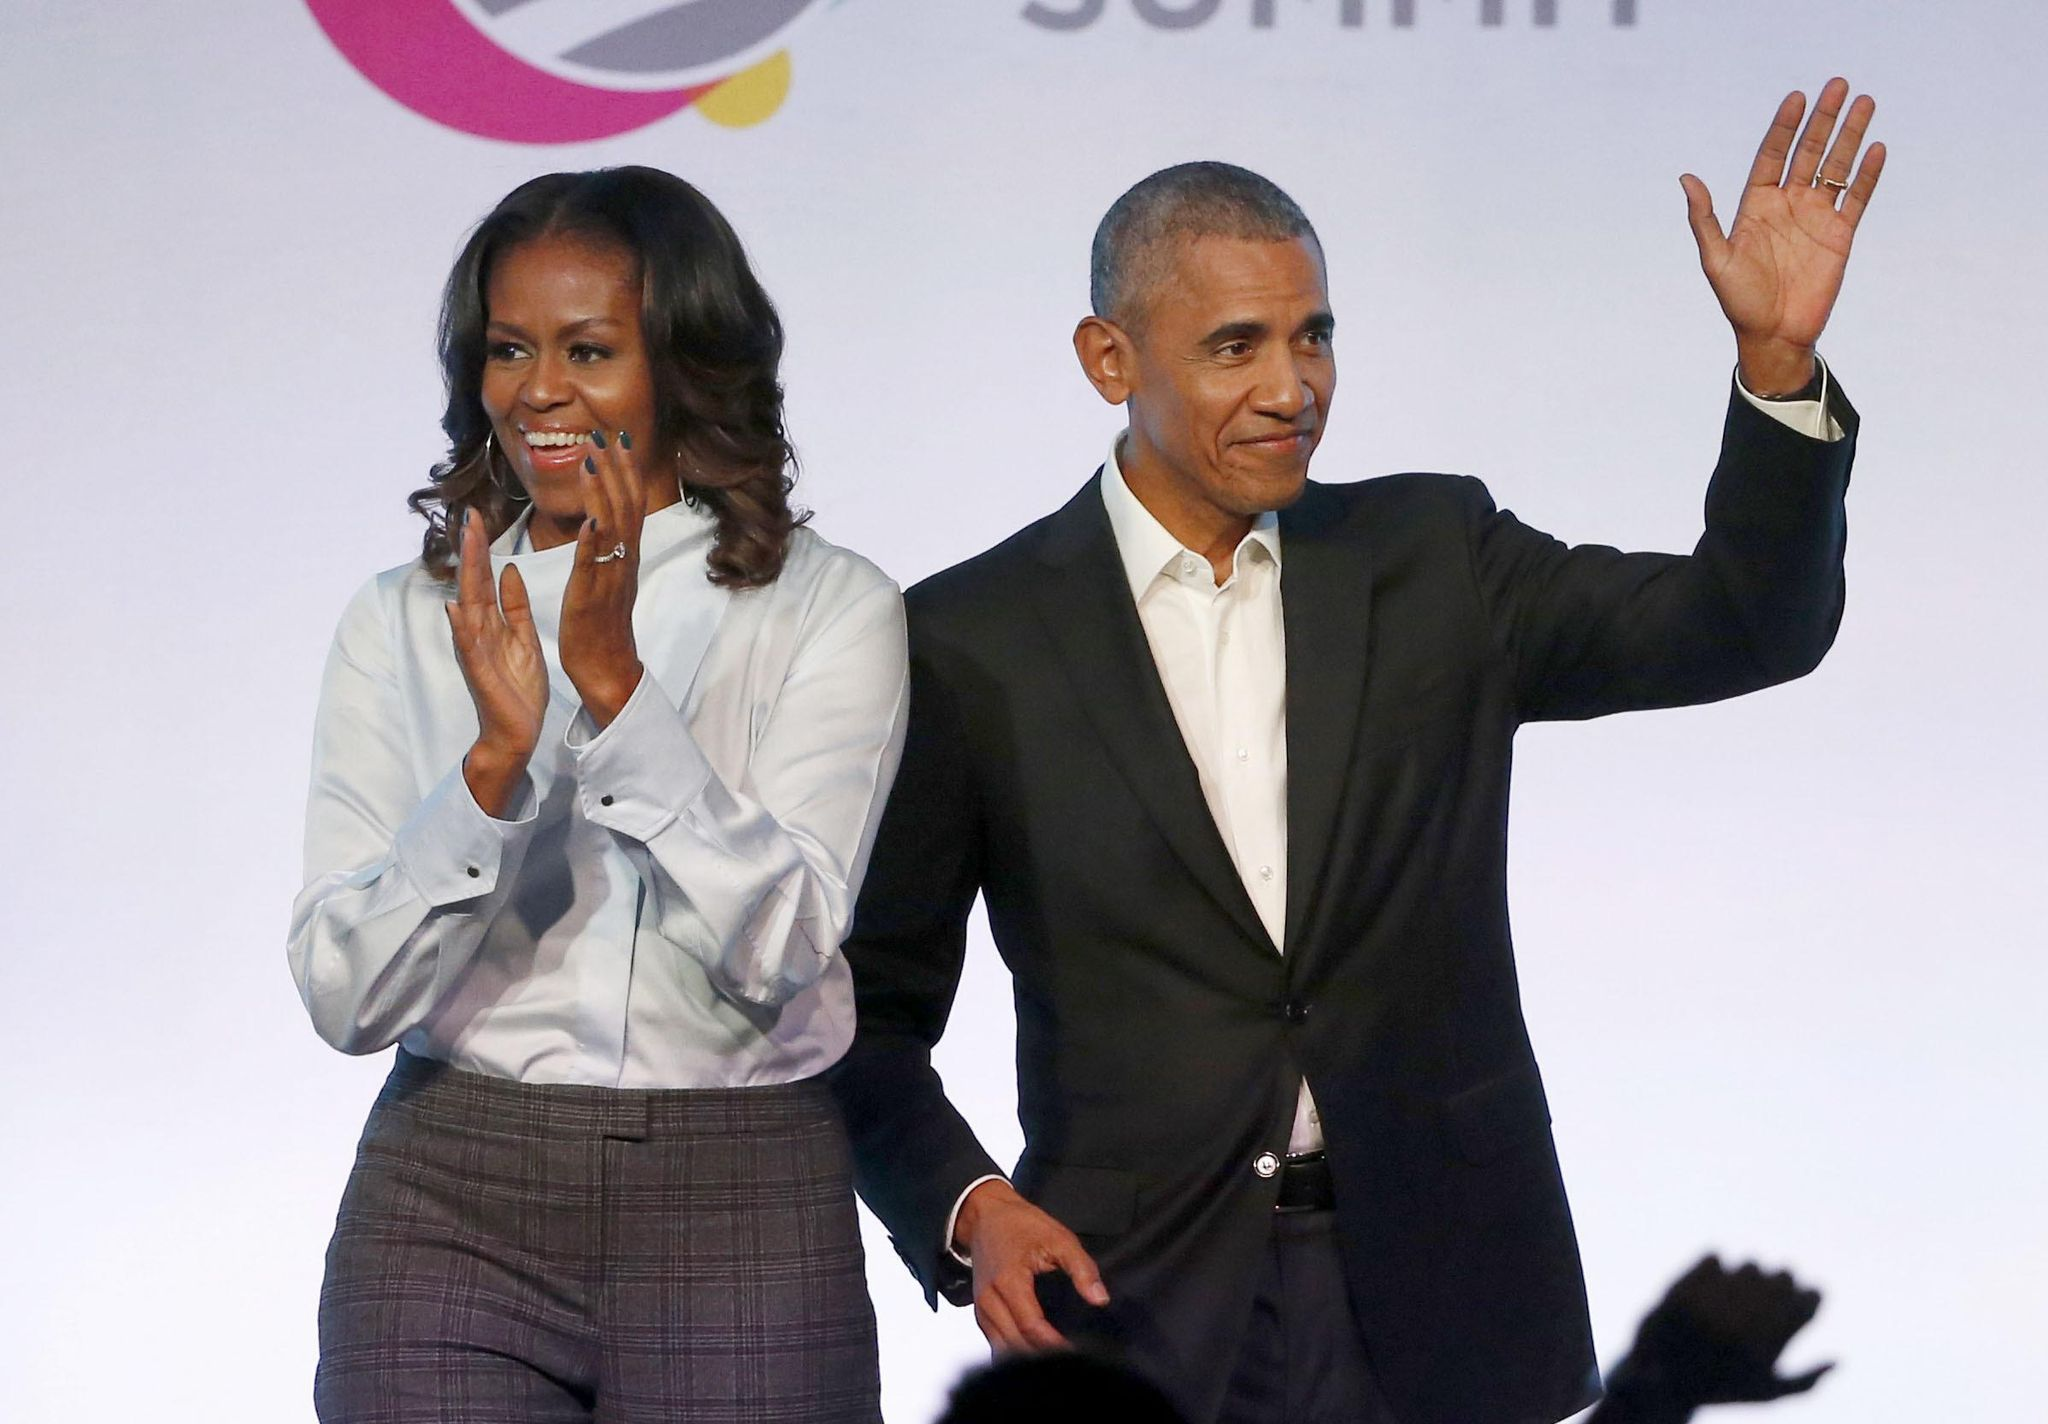 Michelle Obama's whiney sour grapes tell on Trump